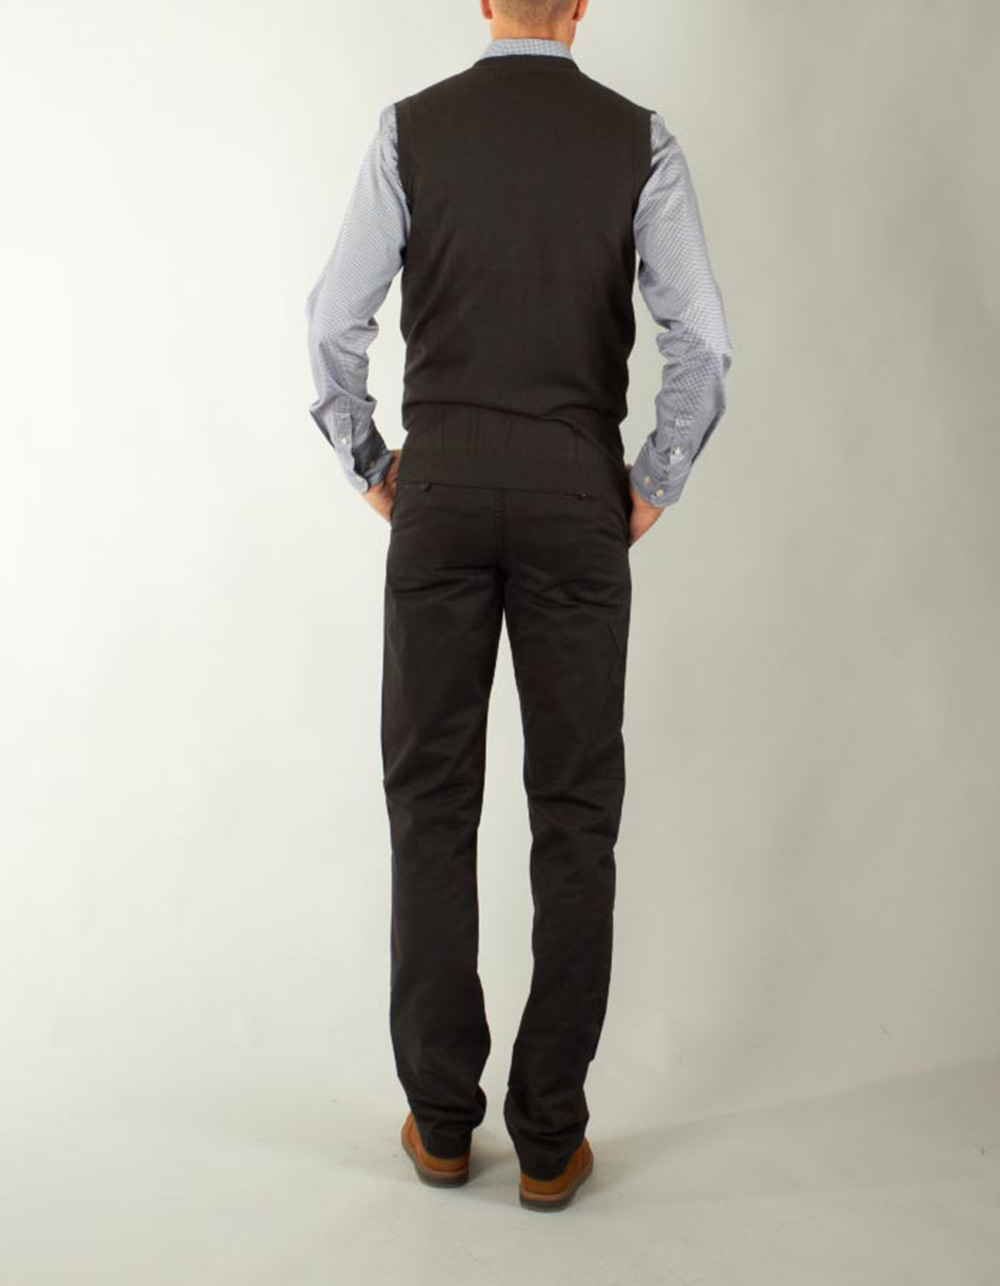 Charcoal grey knitted waistcoat - Backside